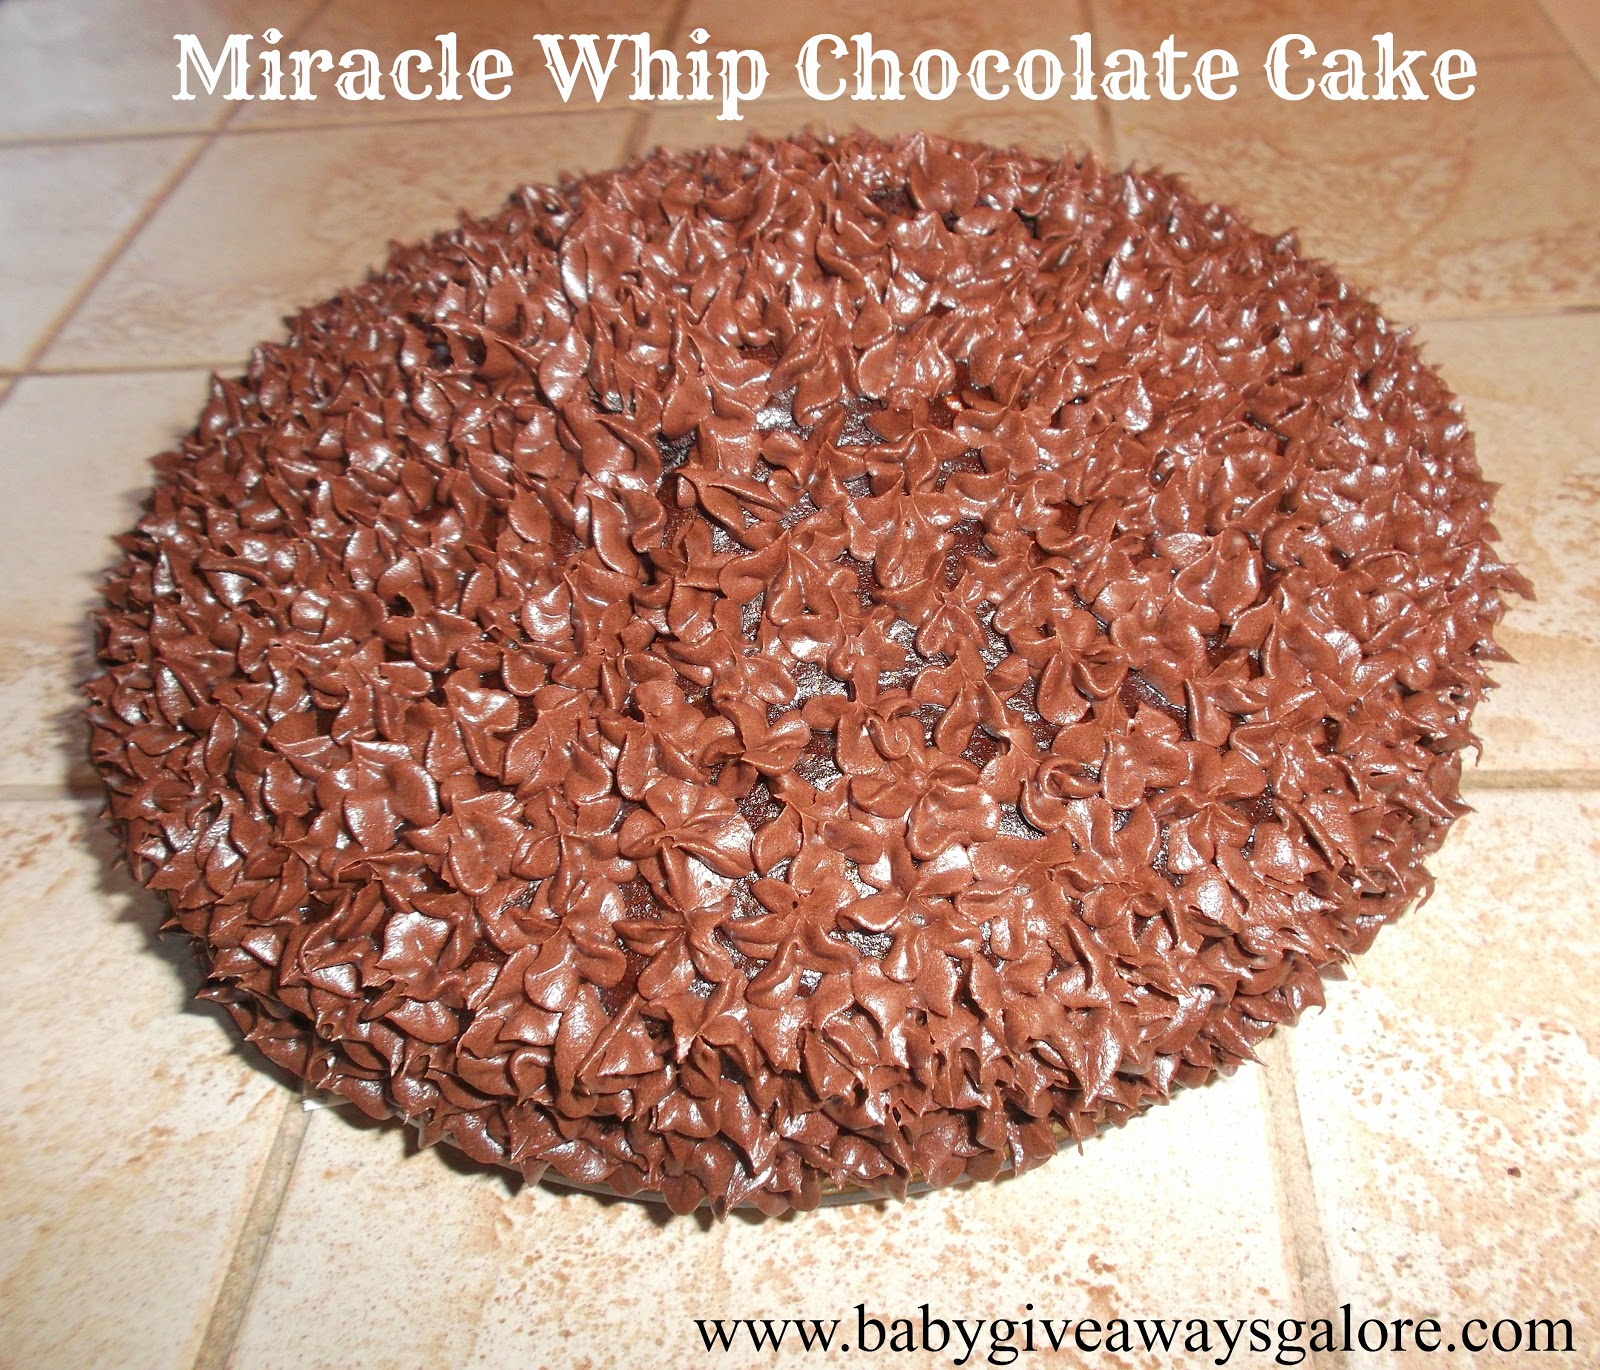 Chocolate cake recipe with miracle whip